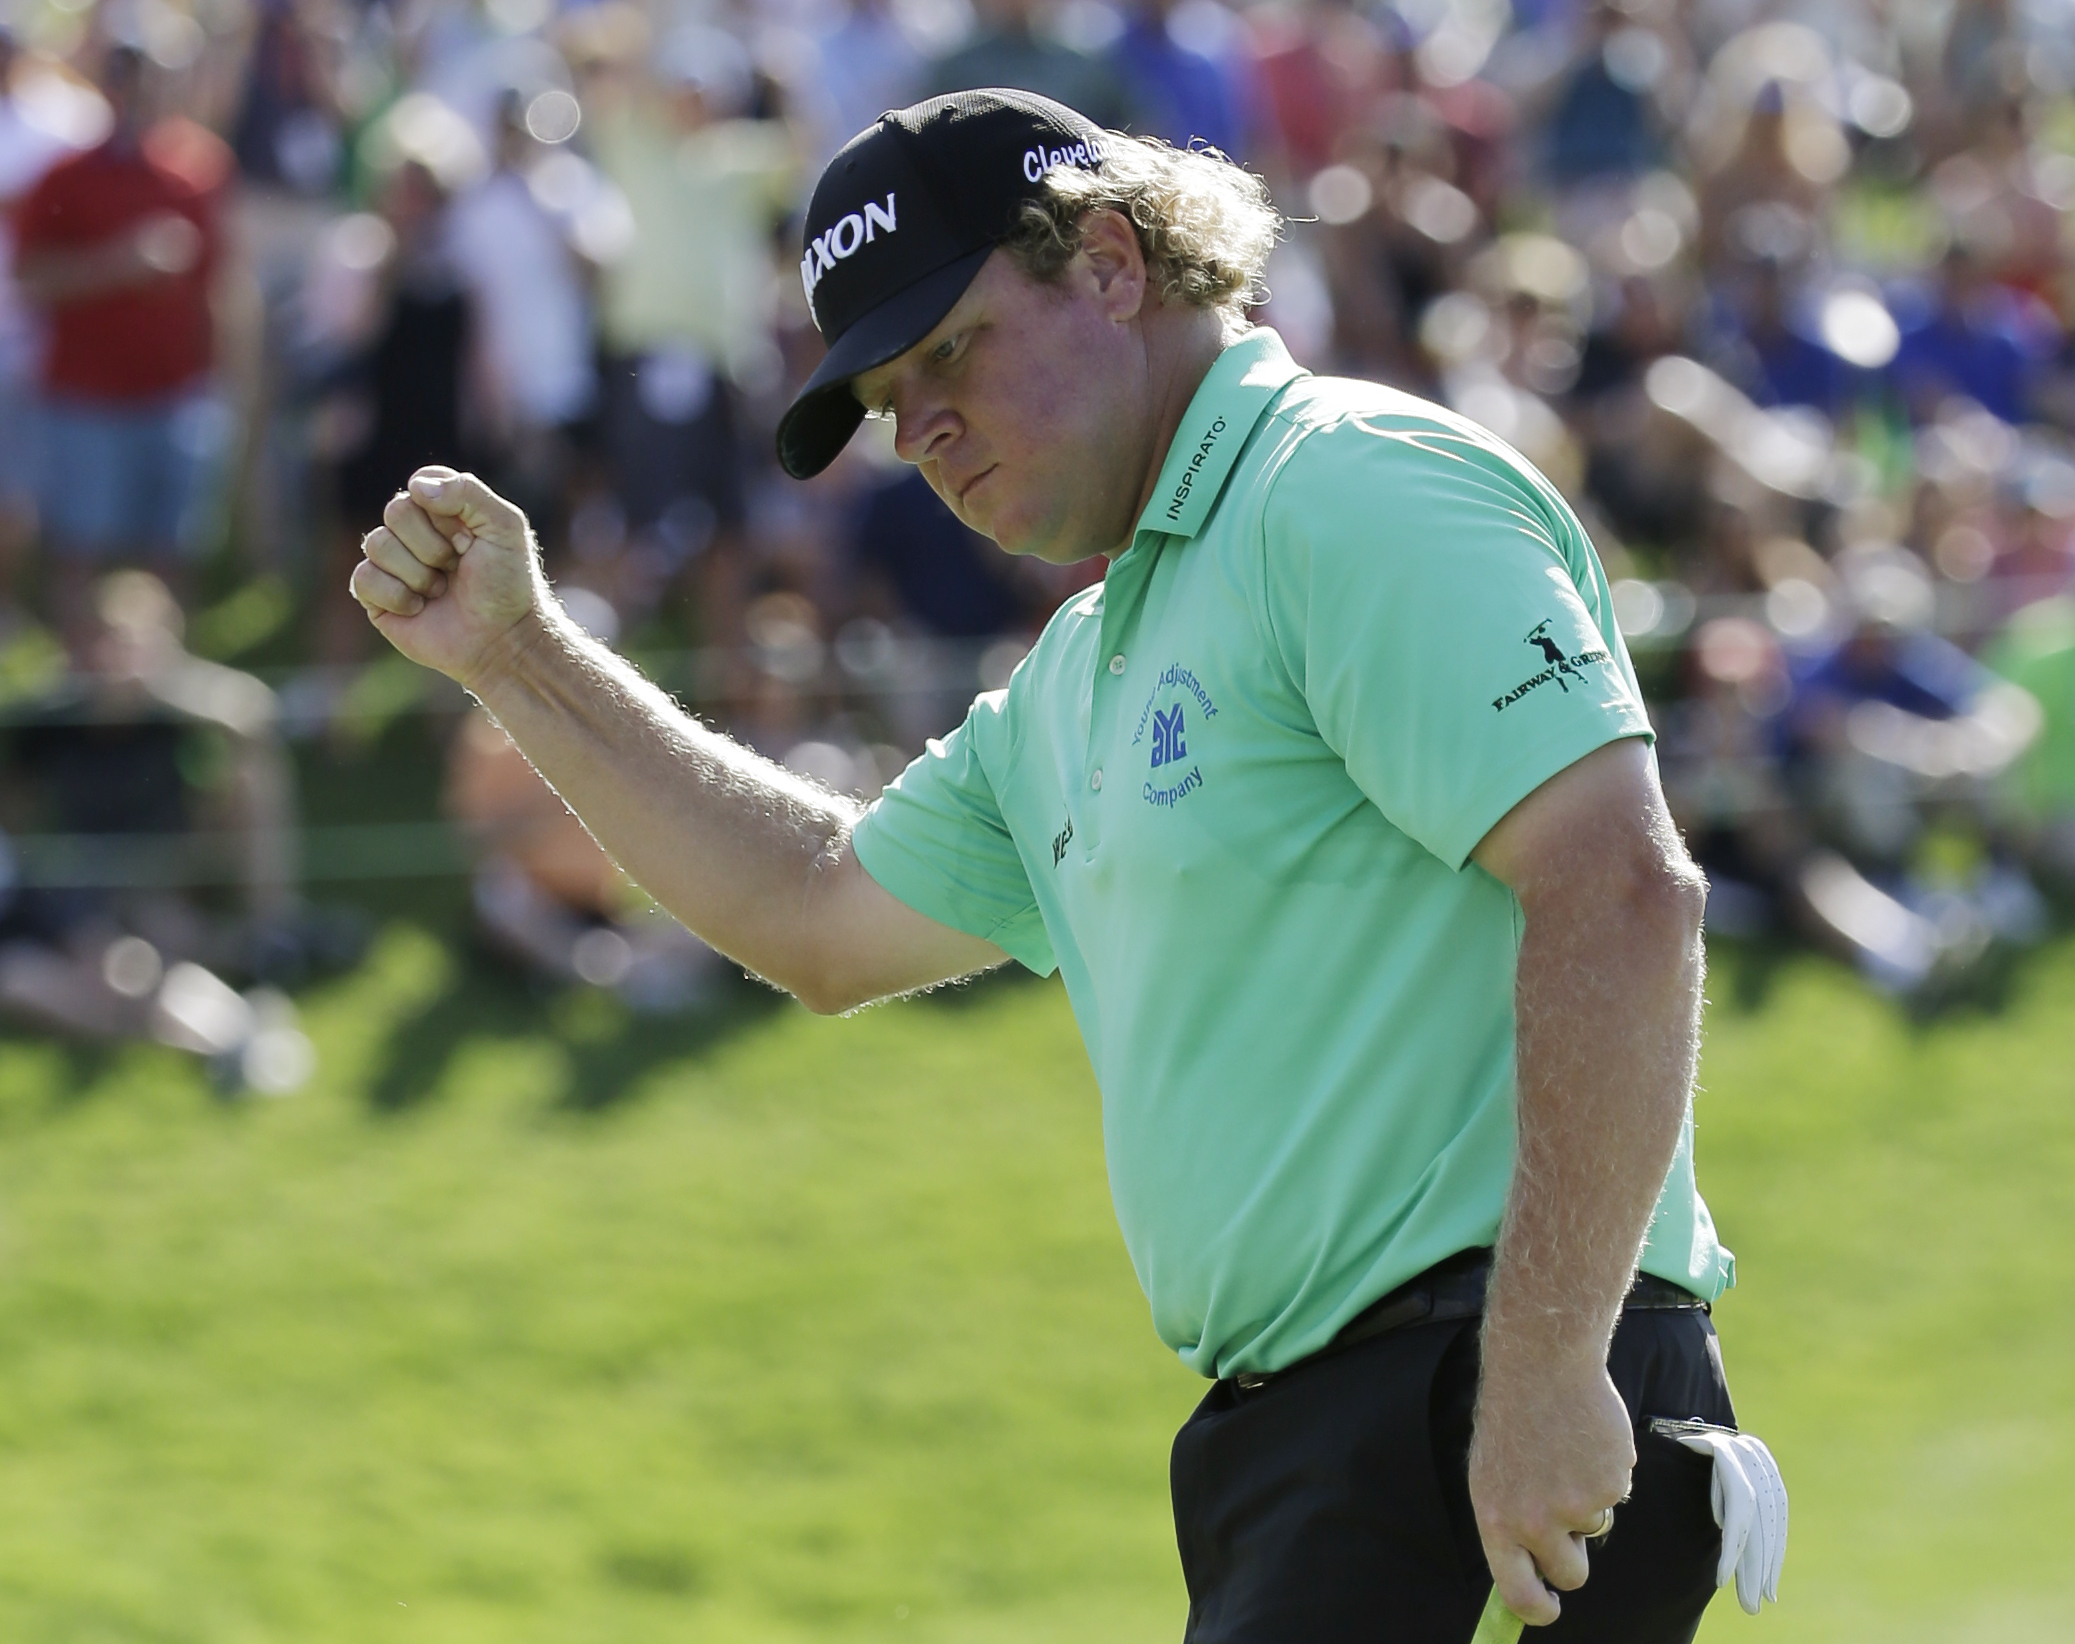 William McGirt celebrates after winning the Memorial golf tournament in a playoff, Sunday, June 5, 2016, in Dublin, Ohio. (AP Photo/Darron Cummings)